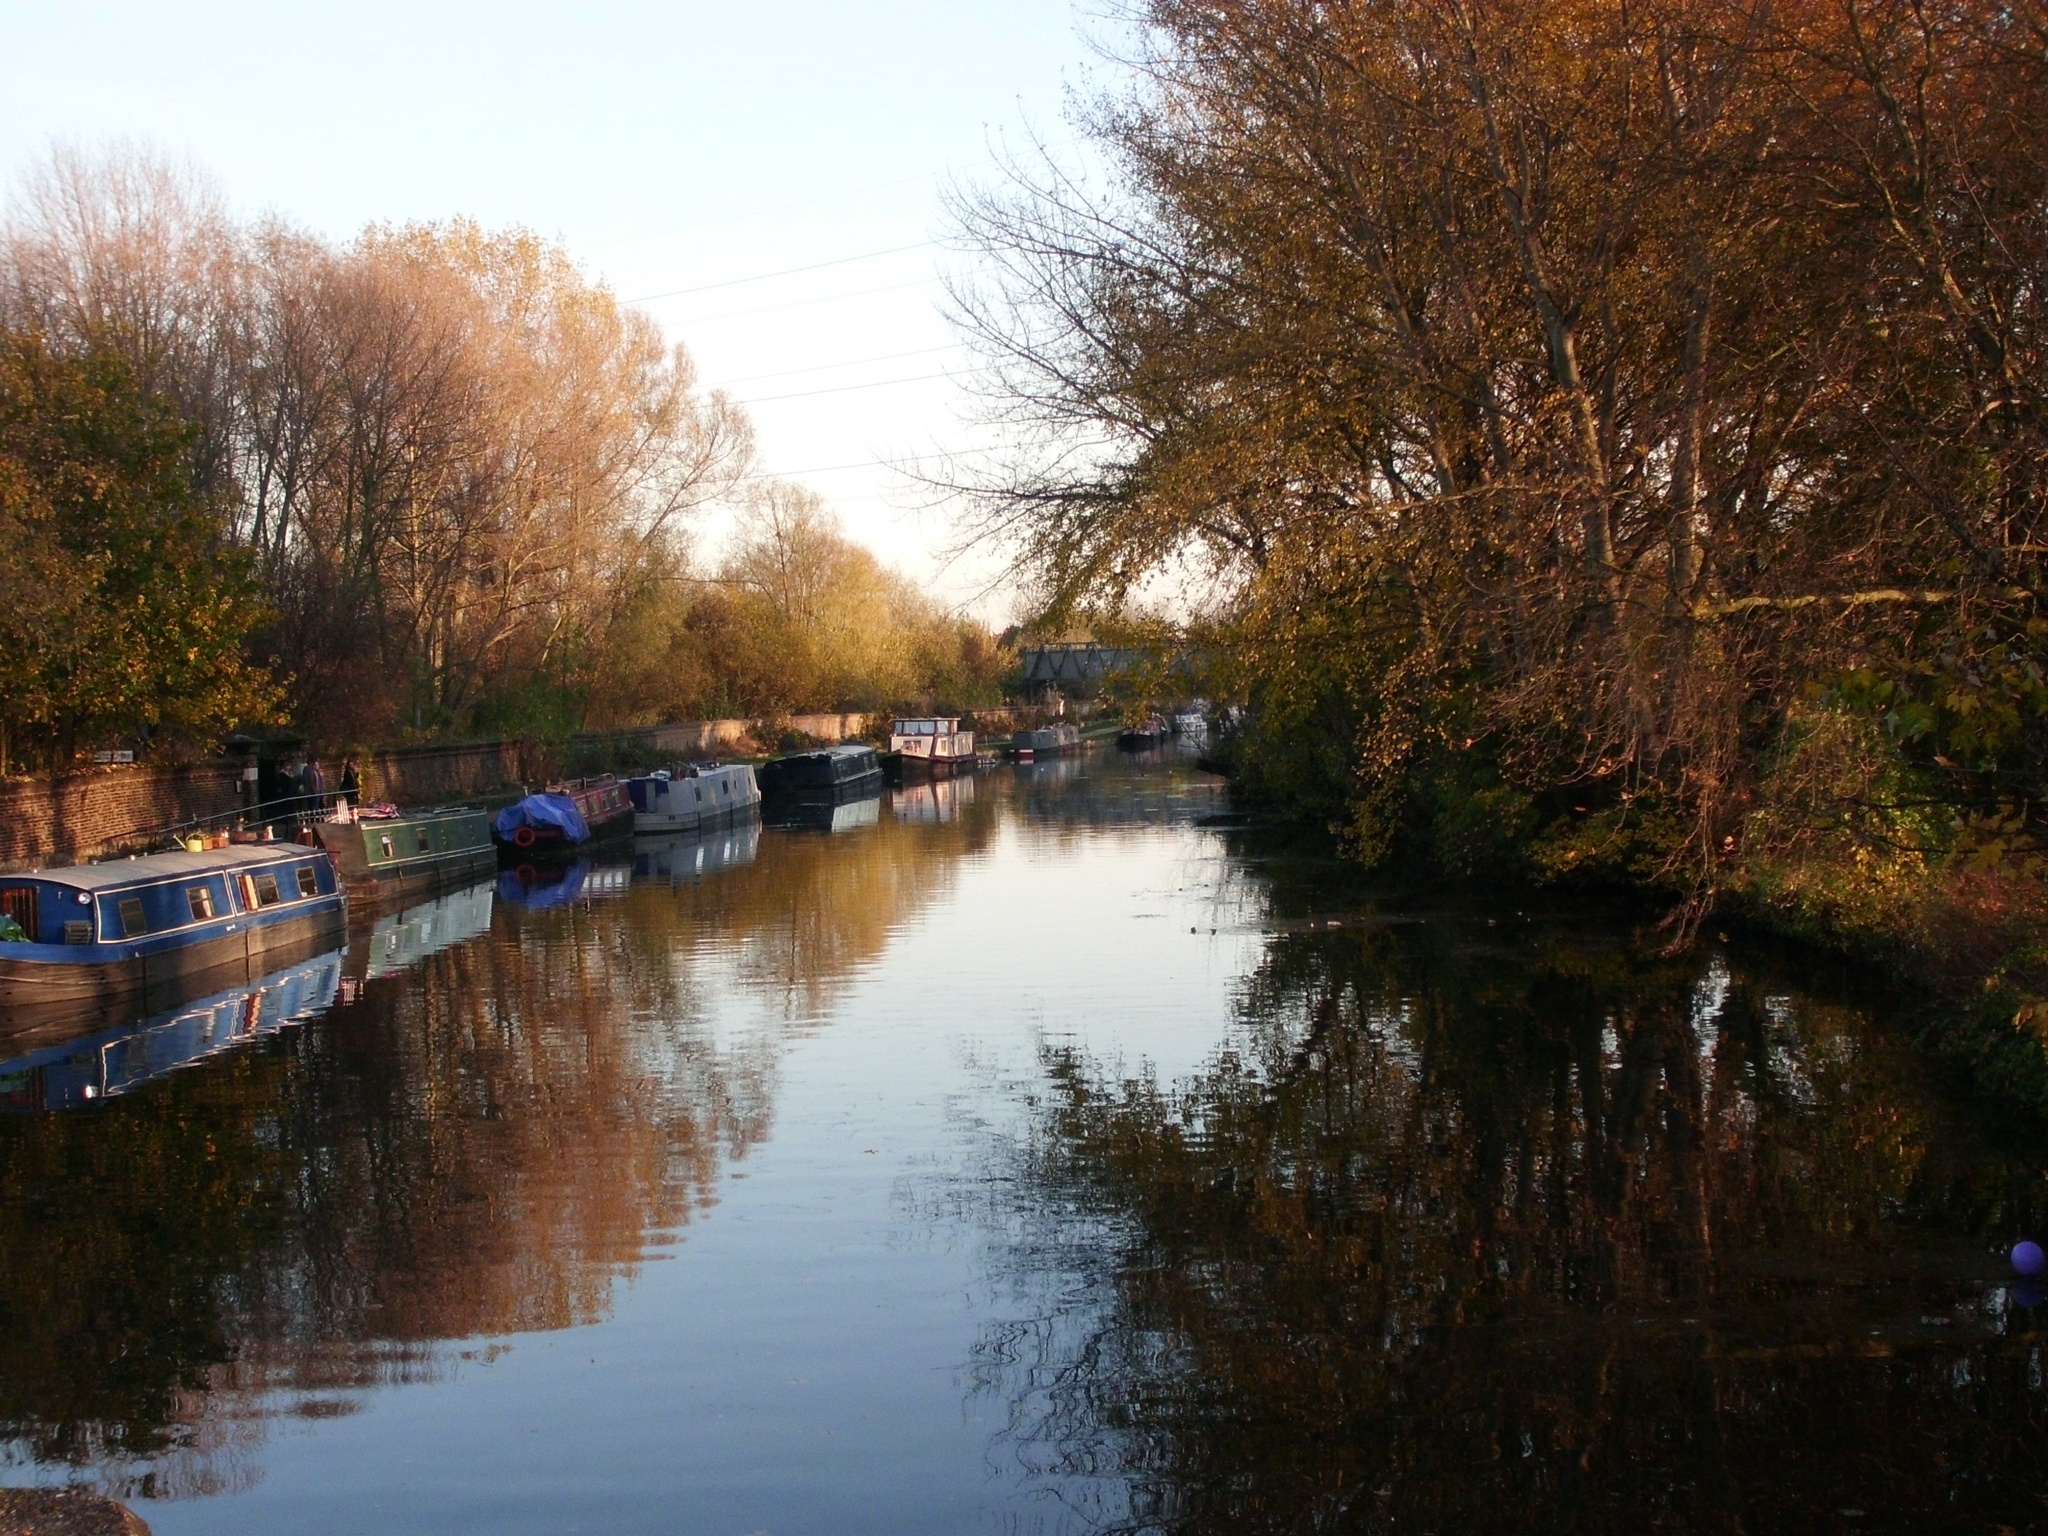 Springfield park-lee valley canal -North London  by Sima Janan